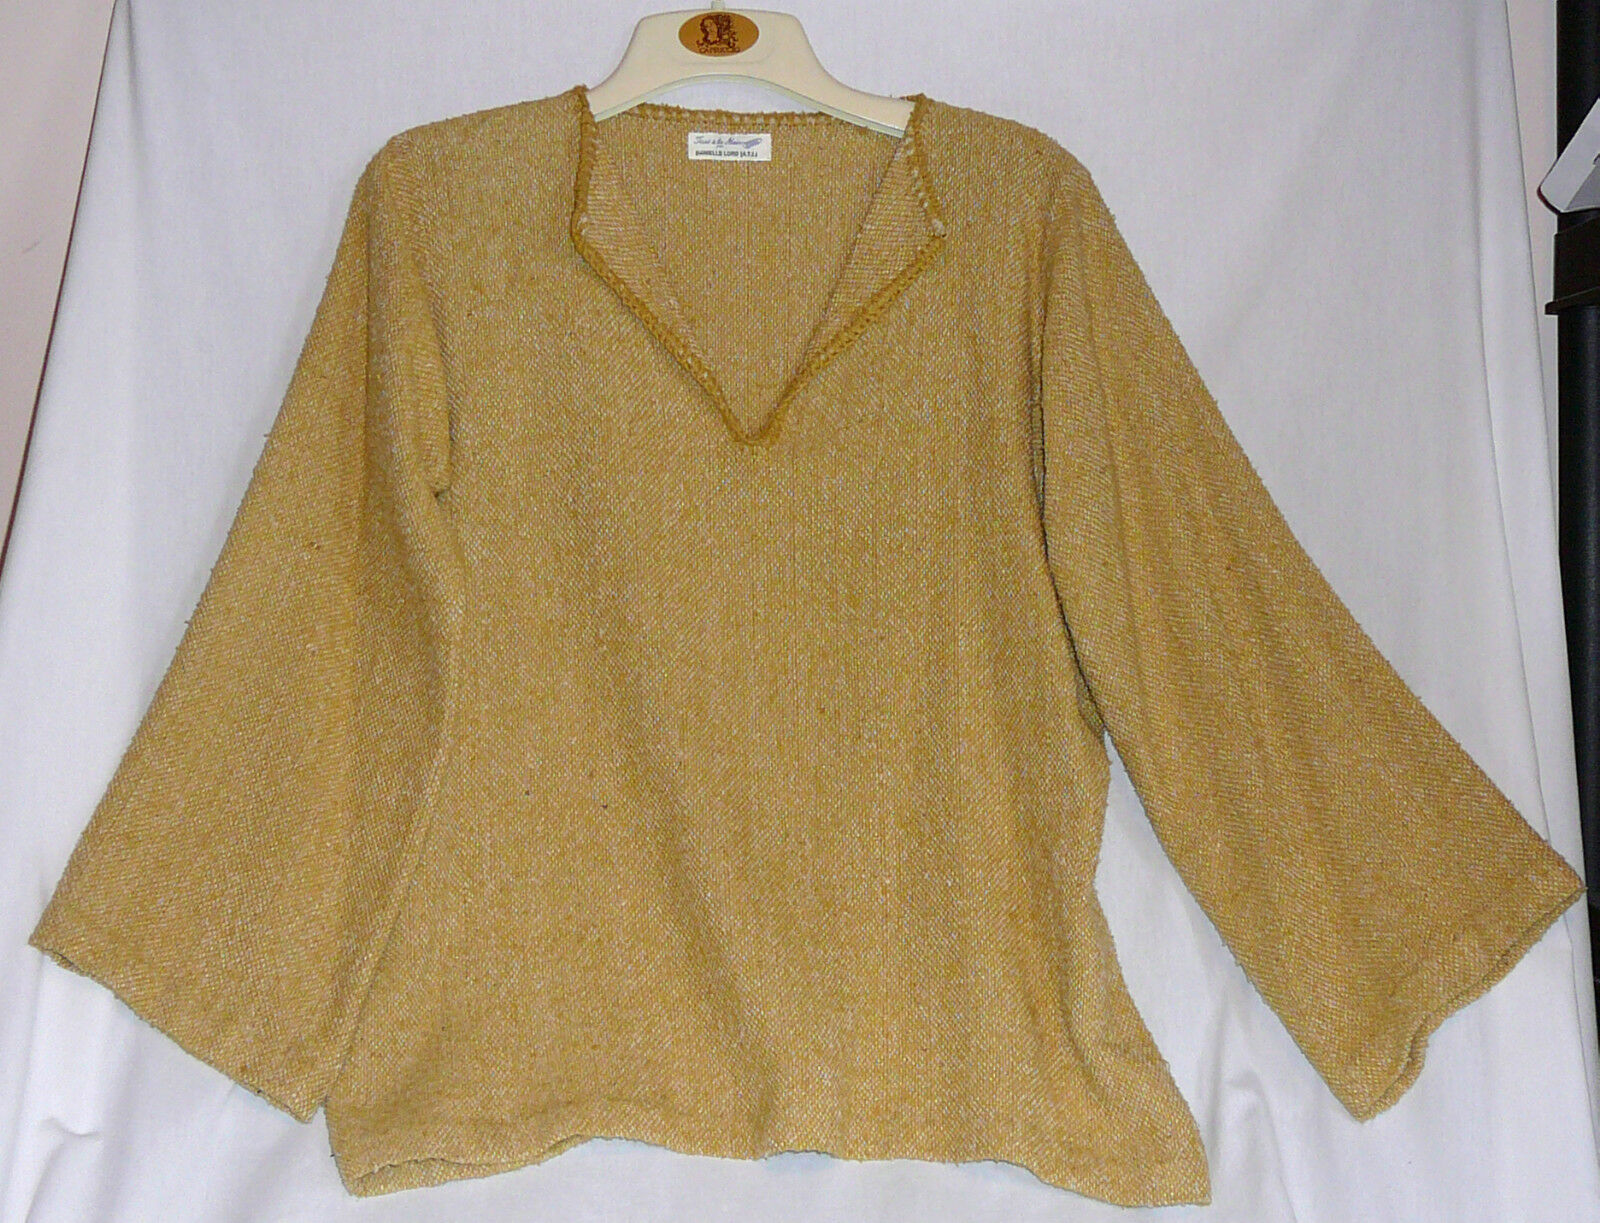 Hand woven fabric tunic. Purchased in Old Montreal at L'Empreinte Cooperative